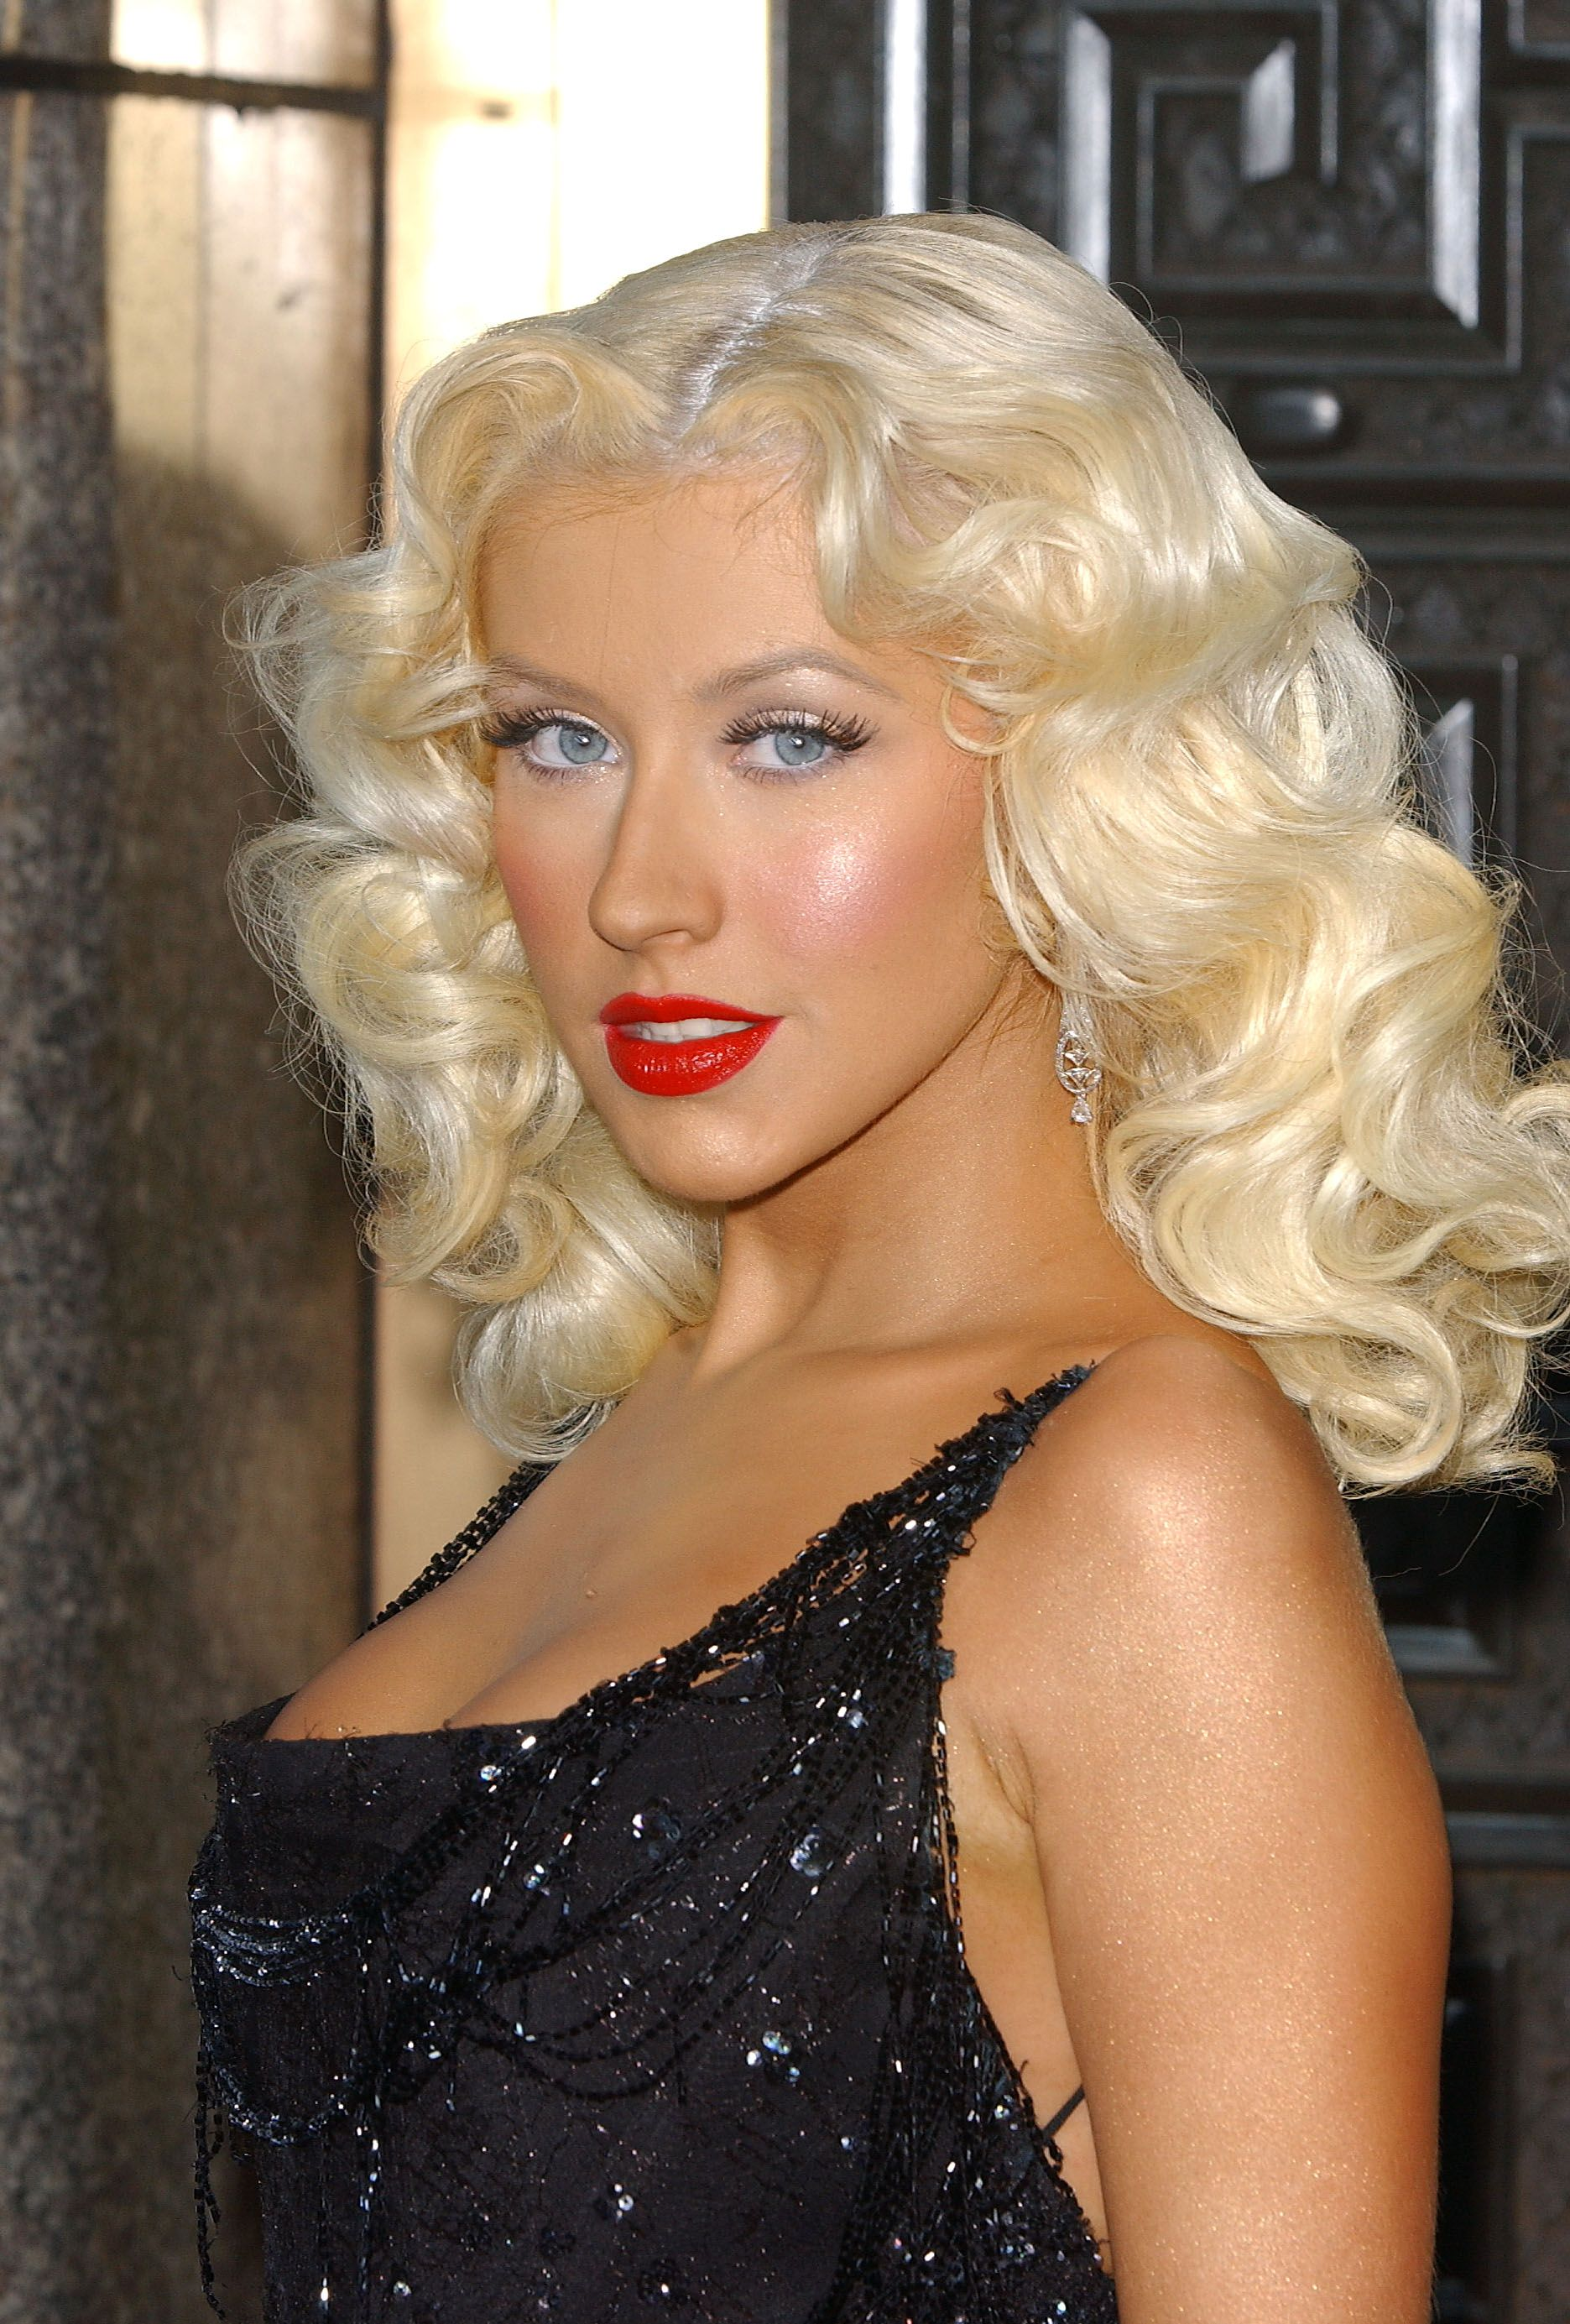 Aguilera Christina short 40s hairstyle pictures forecasting to wear in summer in 2019